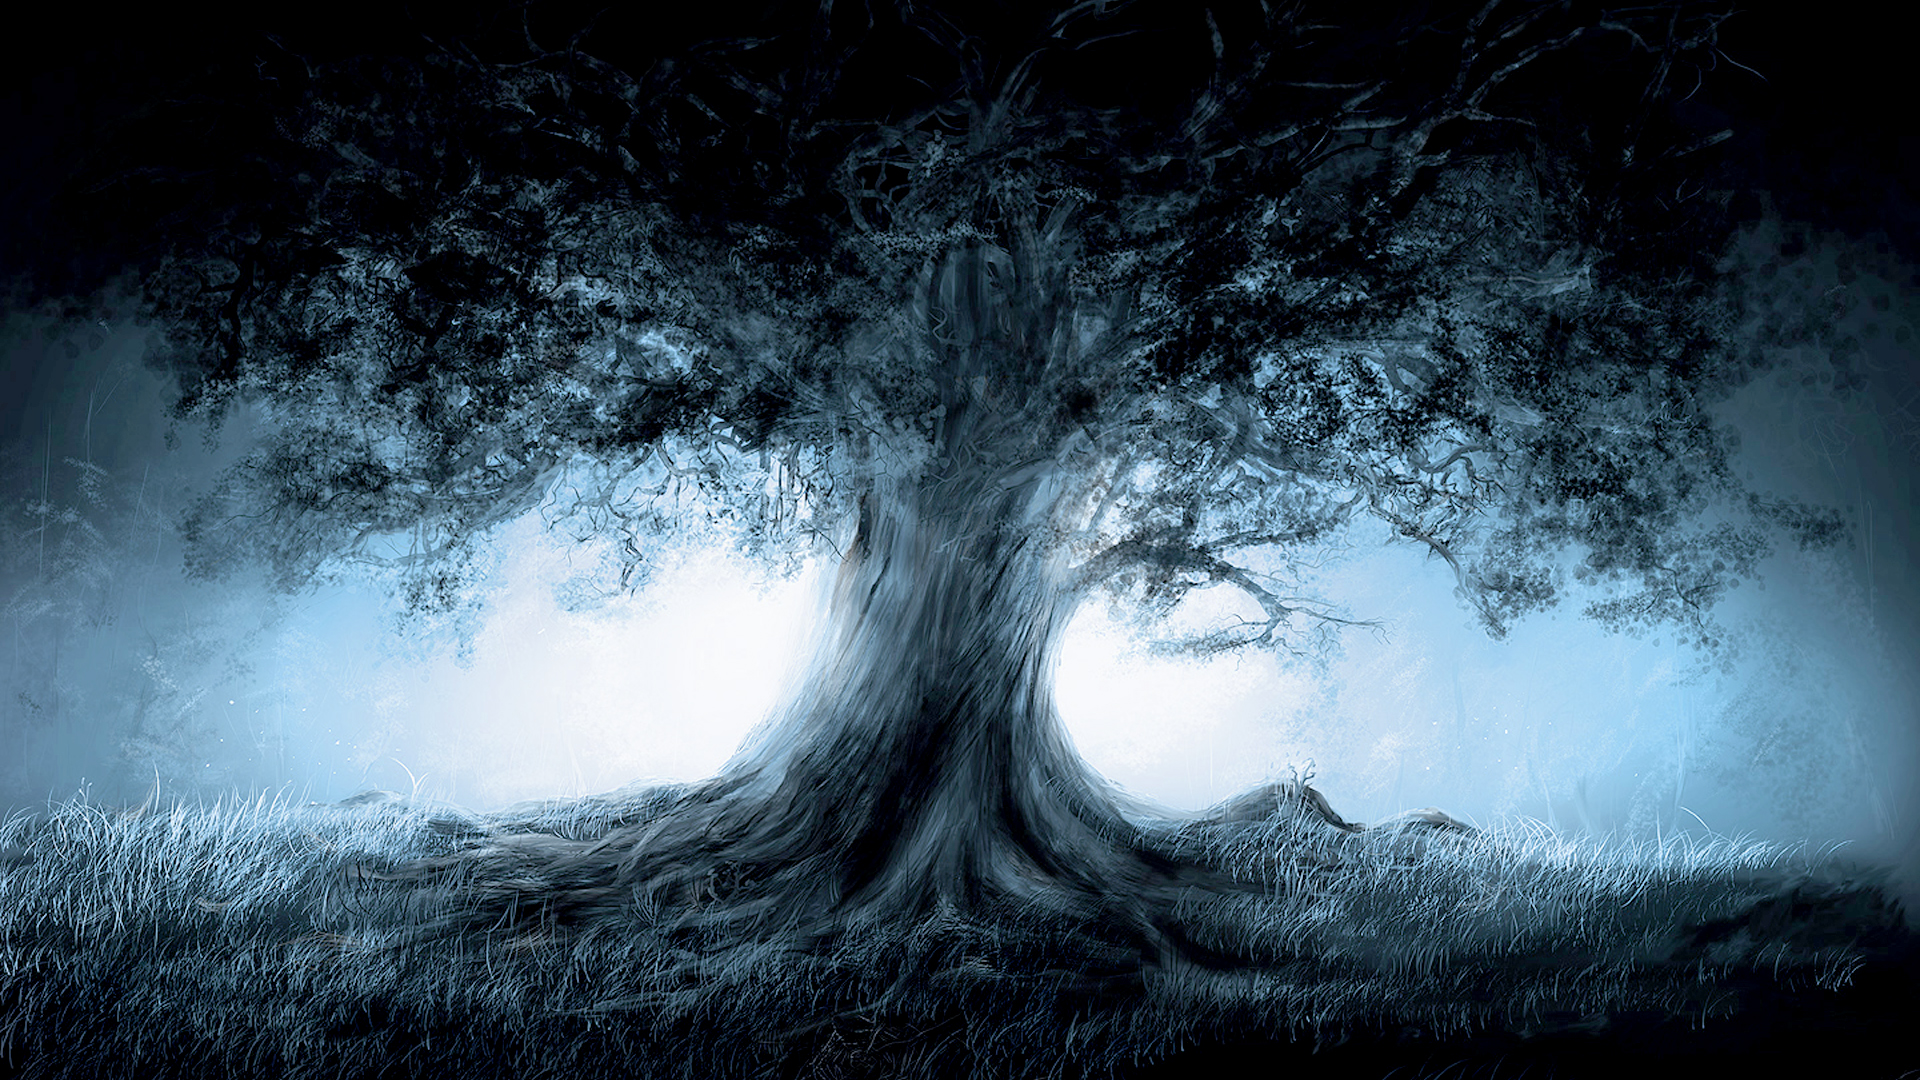 Dark Forest Lonely Tree Wallpapers 242.51 Kb